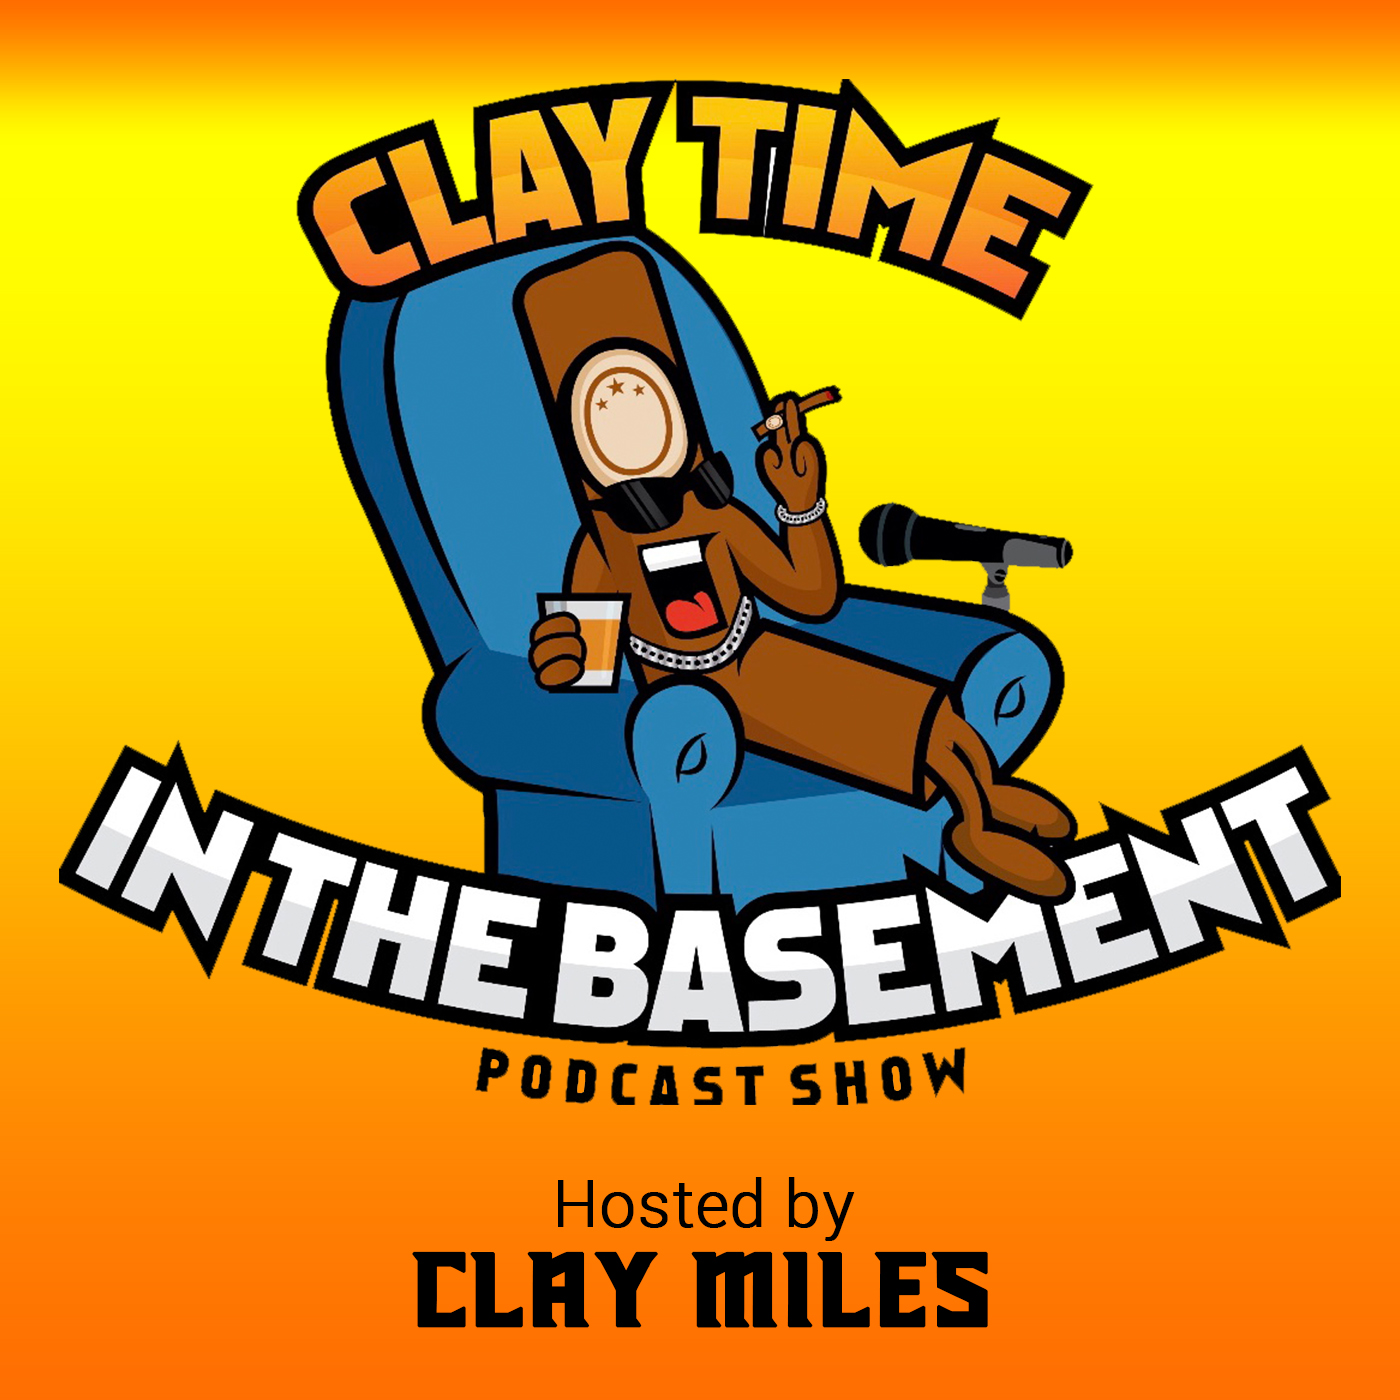 CLAY TIME IN THE BASEMENT PODCAST SHOW show art